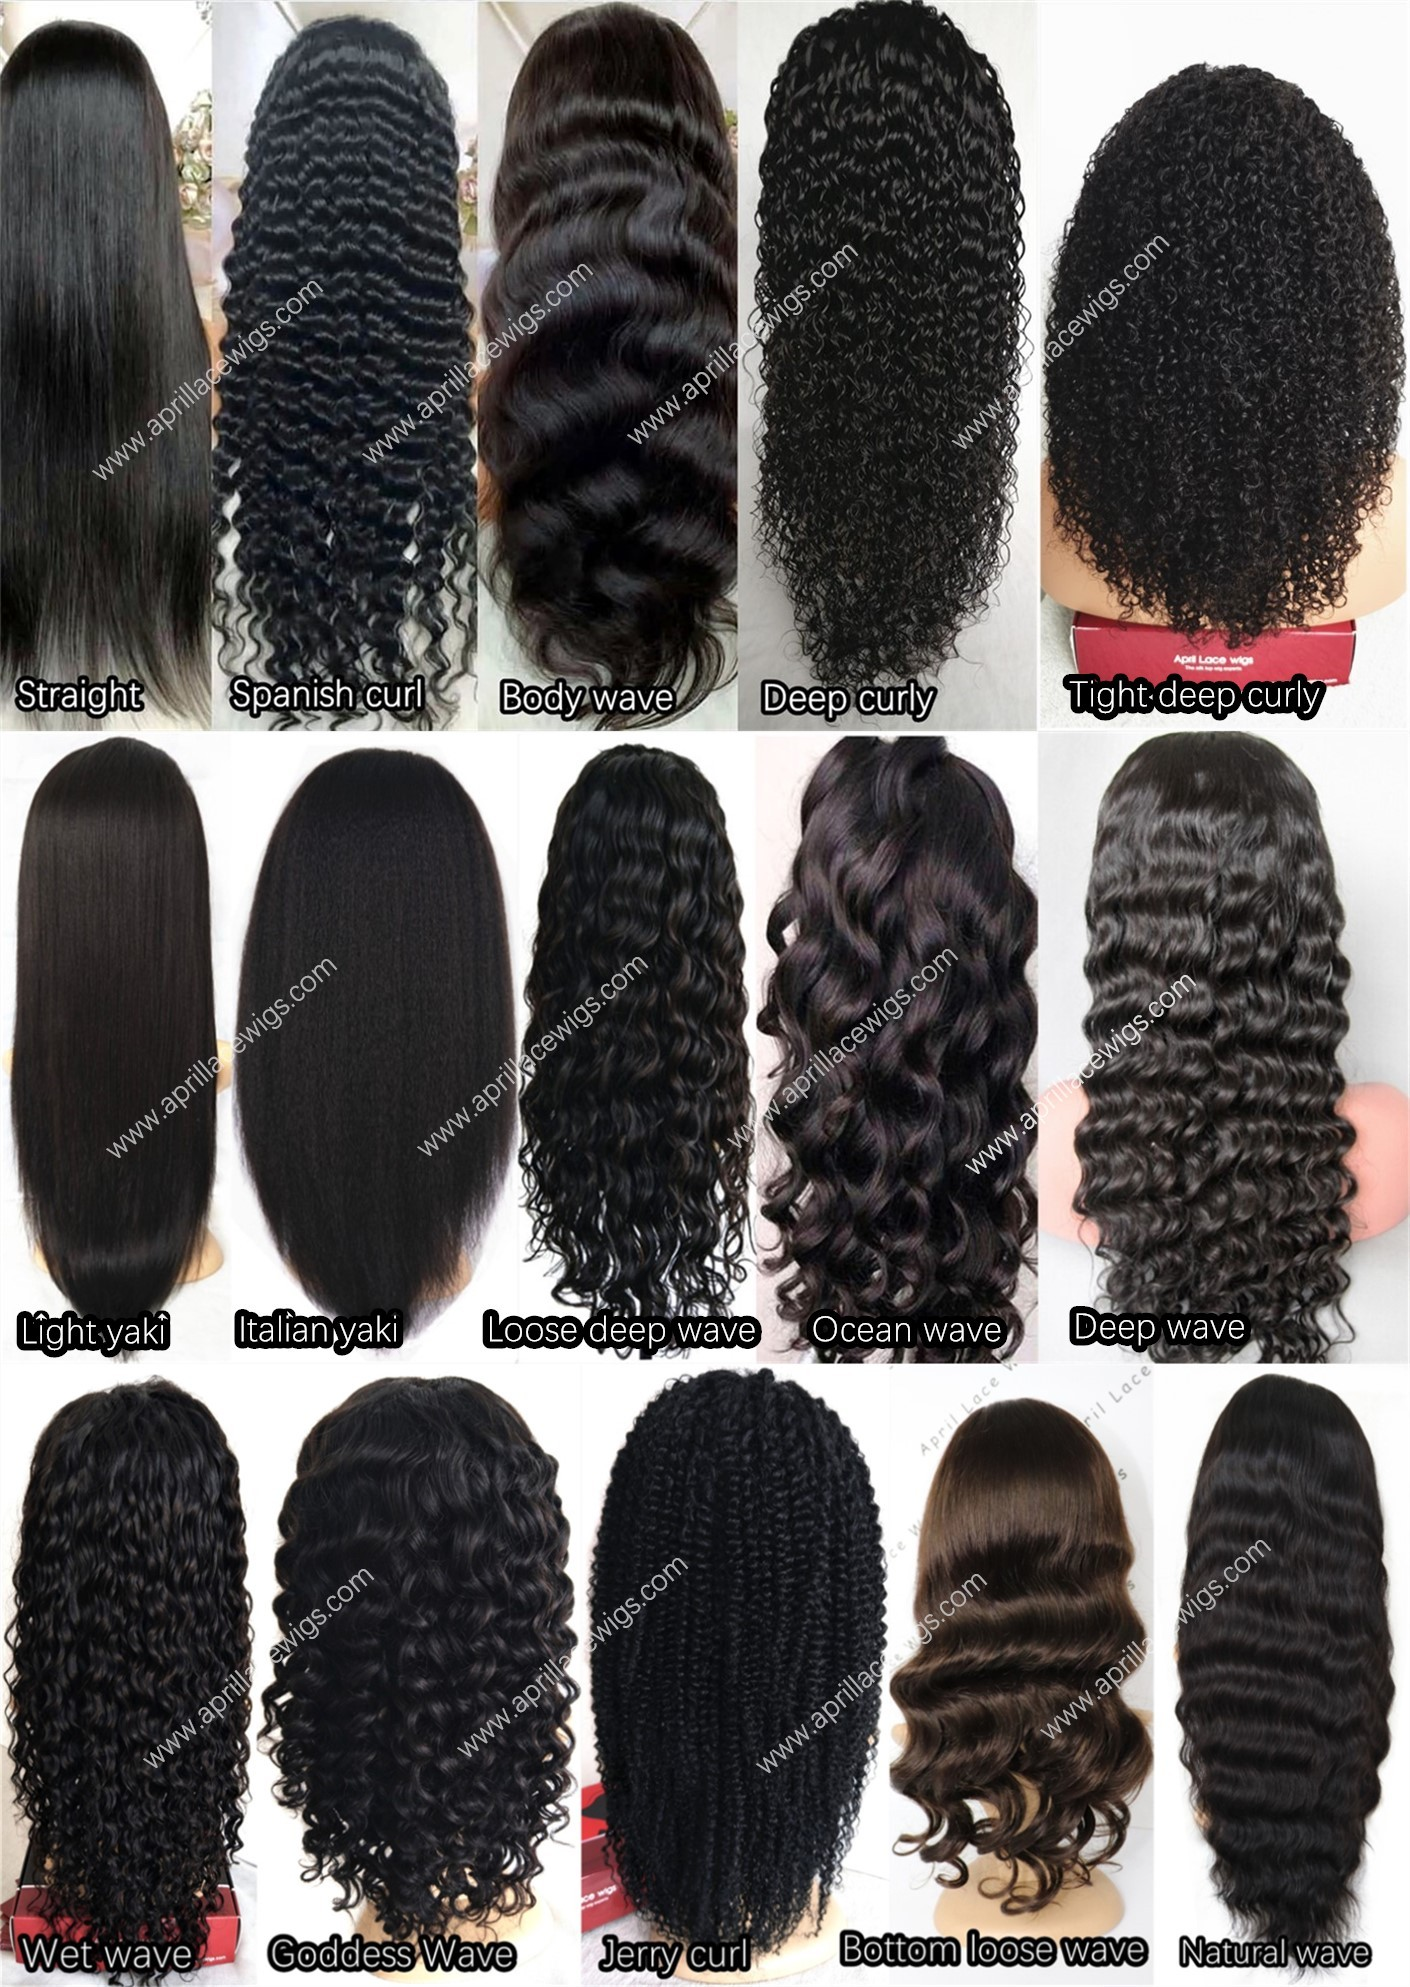 370 wigs, 370 lace wigs, 370 lace front wig